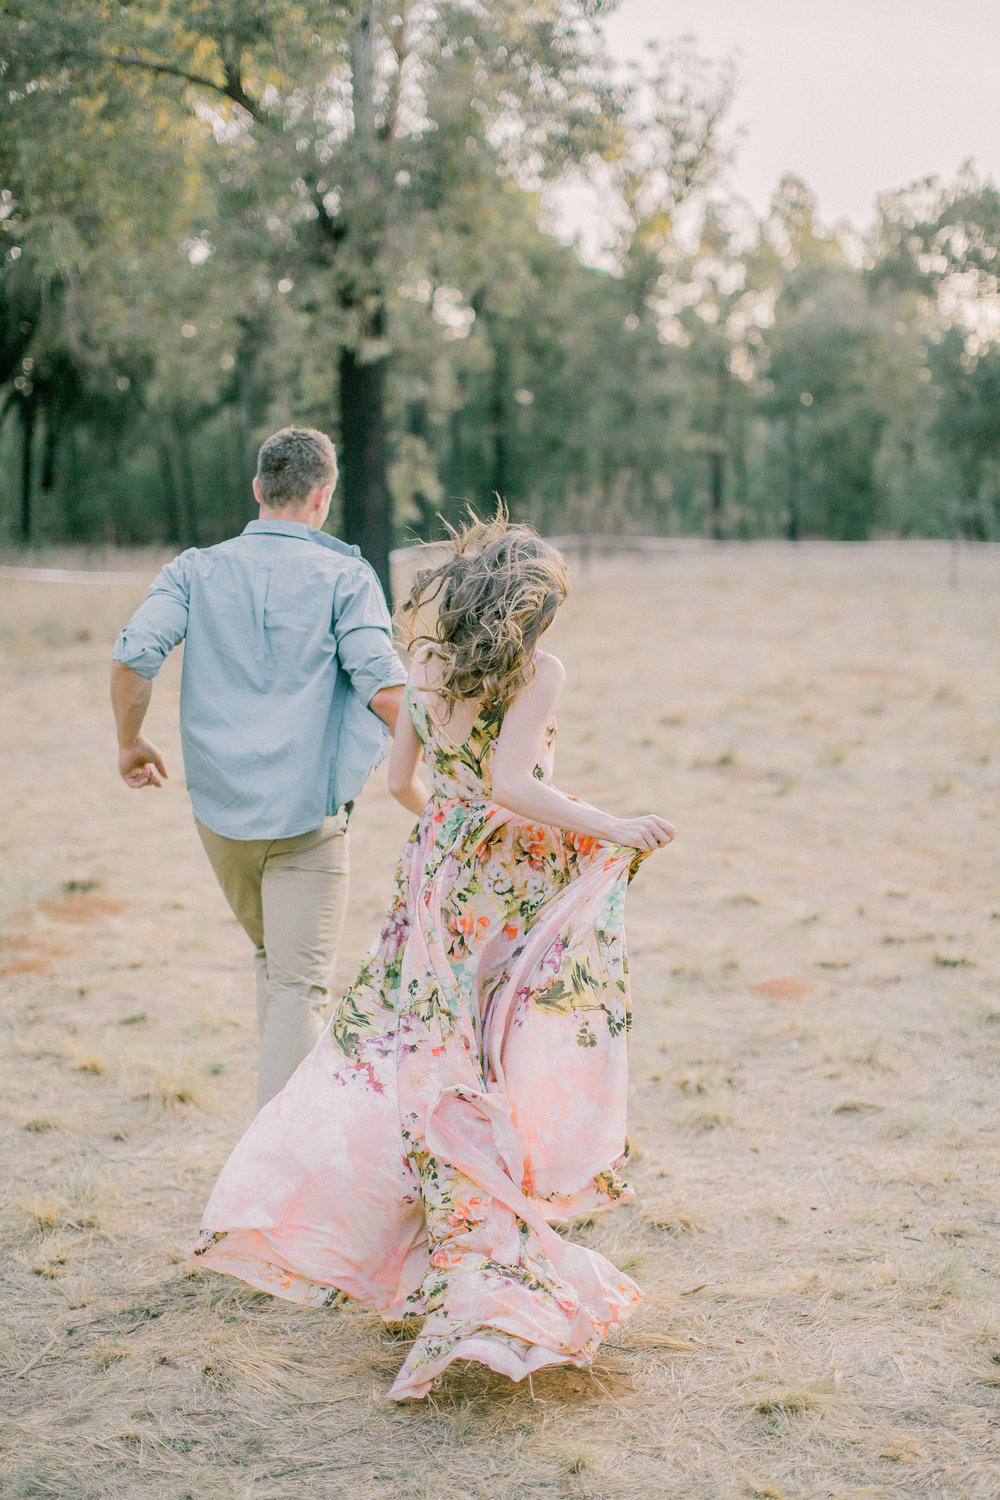 gauteng wedding photographer clareece smit_004.jpg